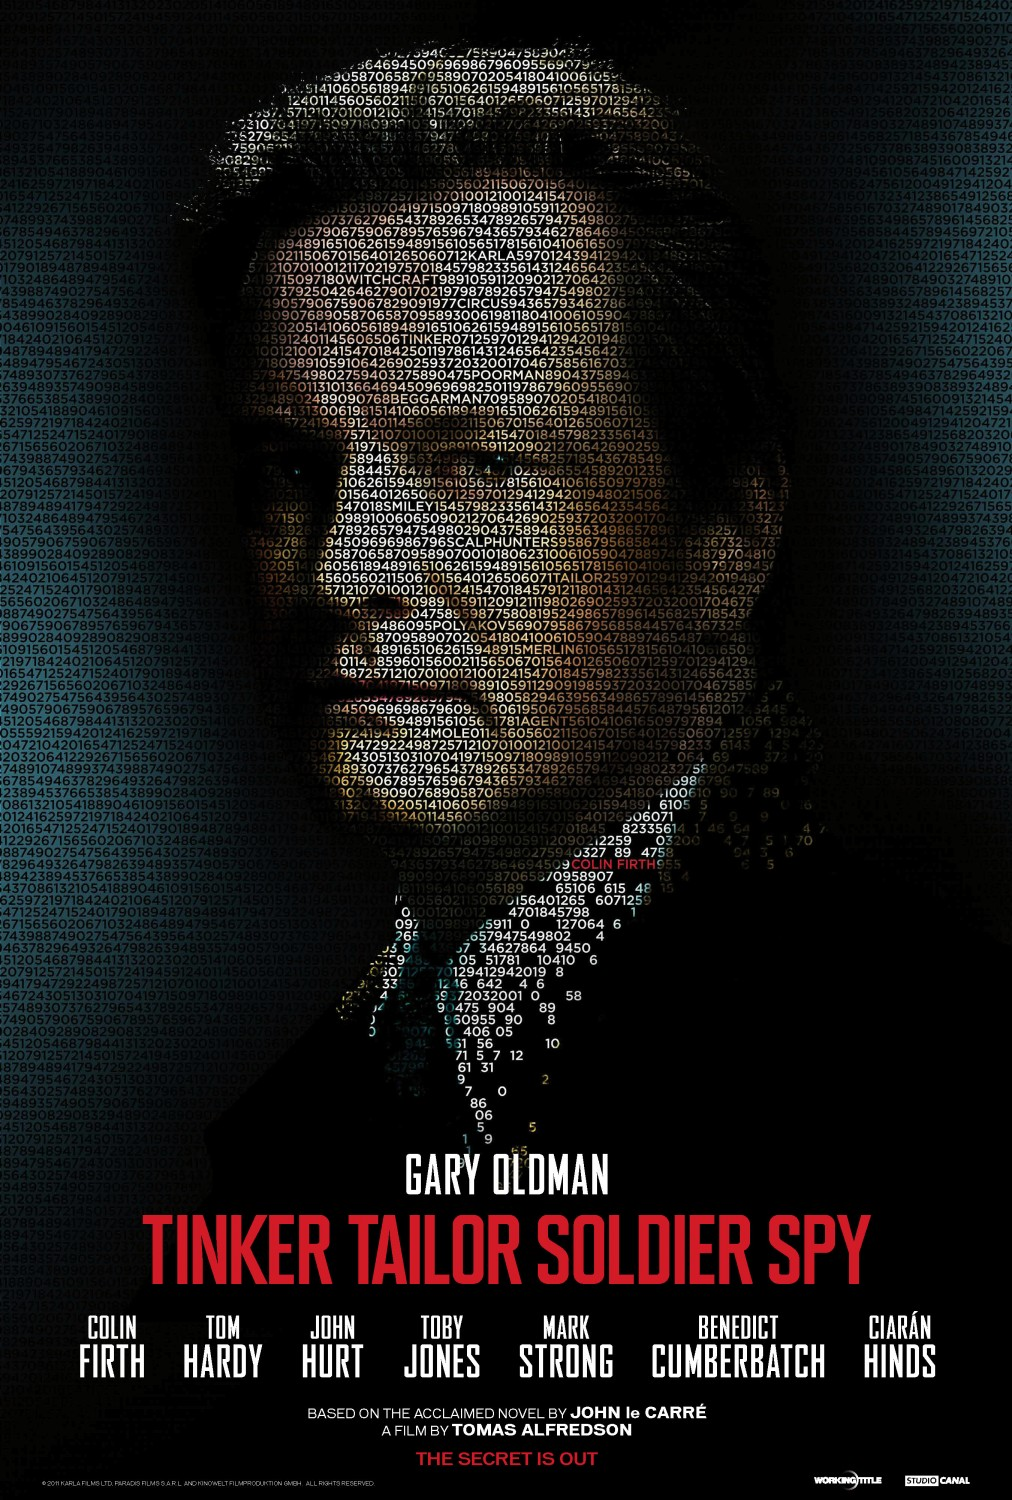 Tinker Tailor Soldier Spy - Colin Firth